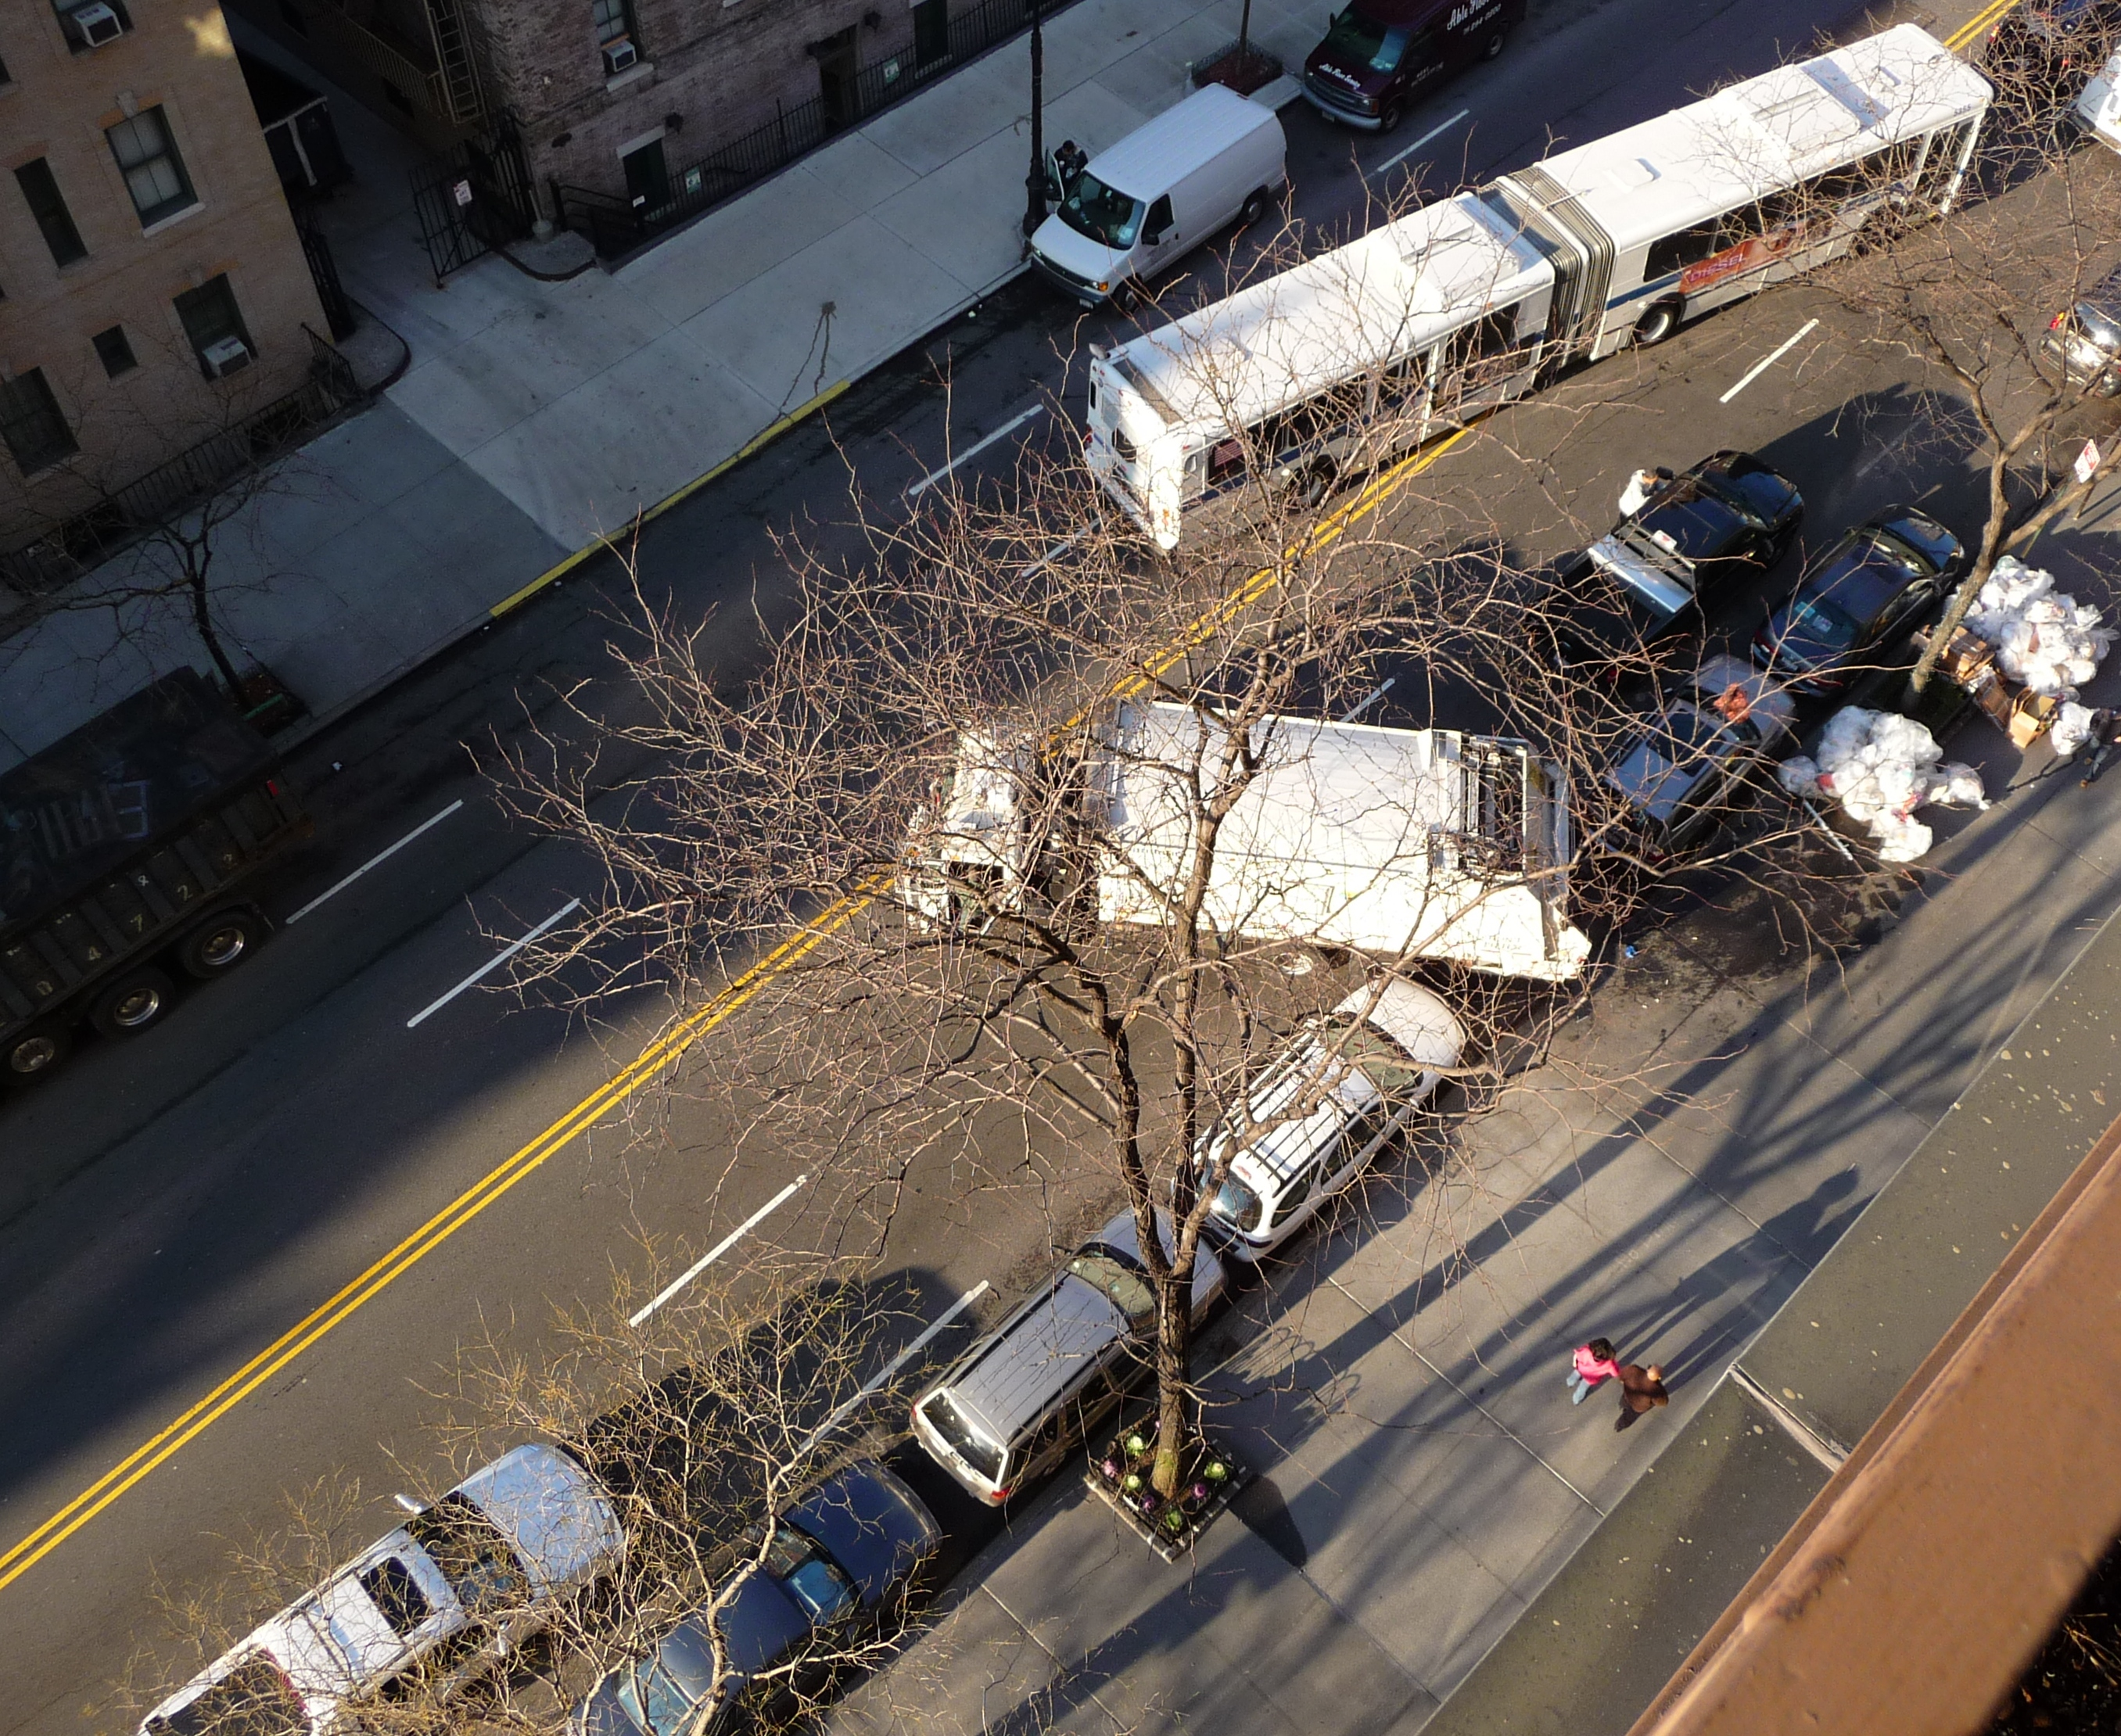 Question: Why Do Some Garbagemen (Sorry, Sanitation Workers) Block New York City Streets and Not Give A Damn about Public Safety?